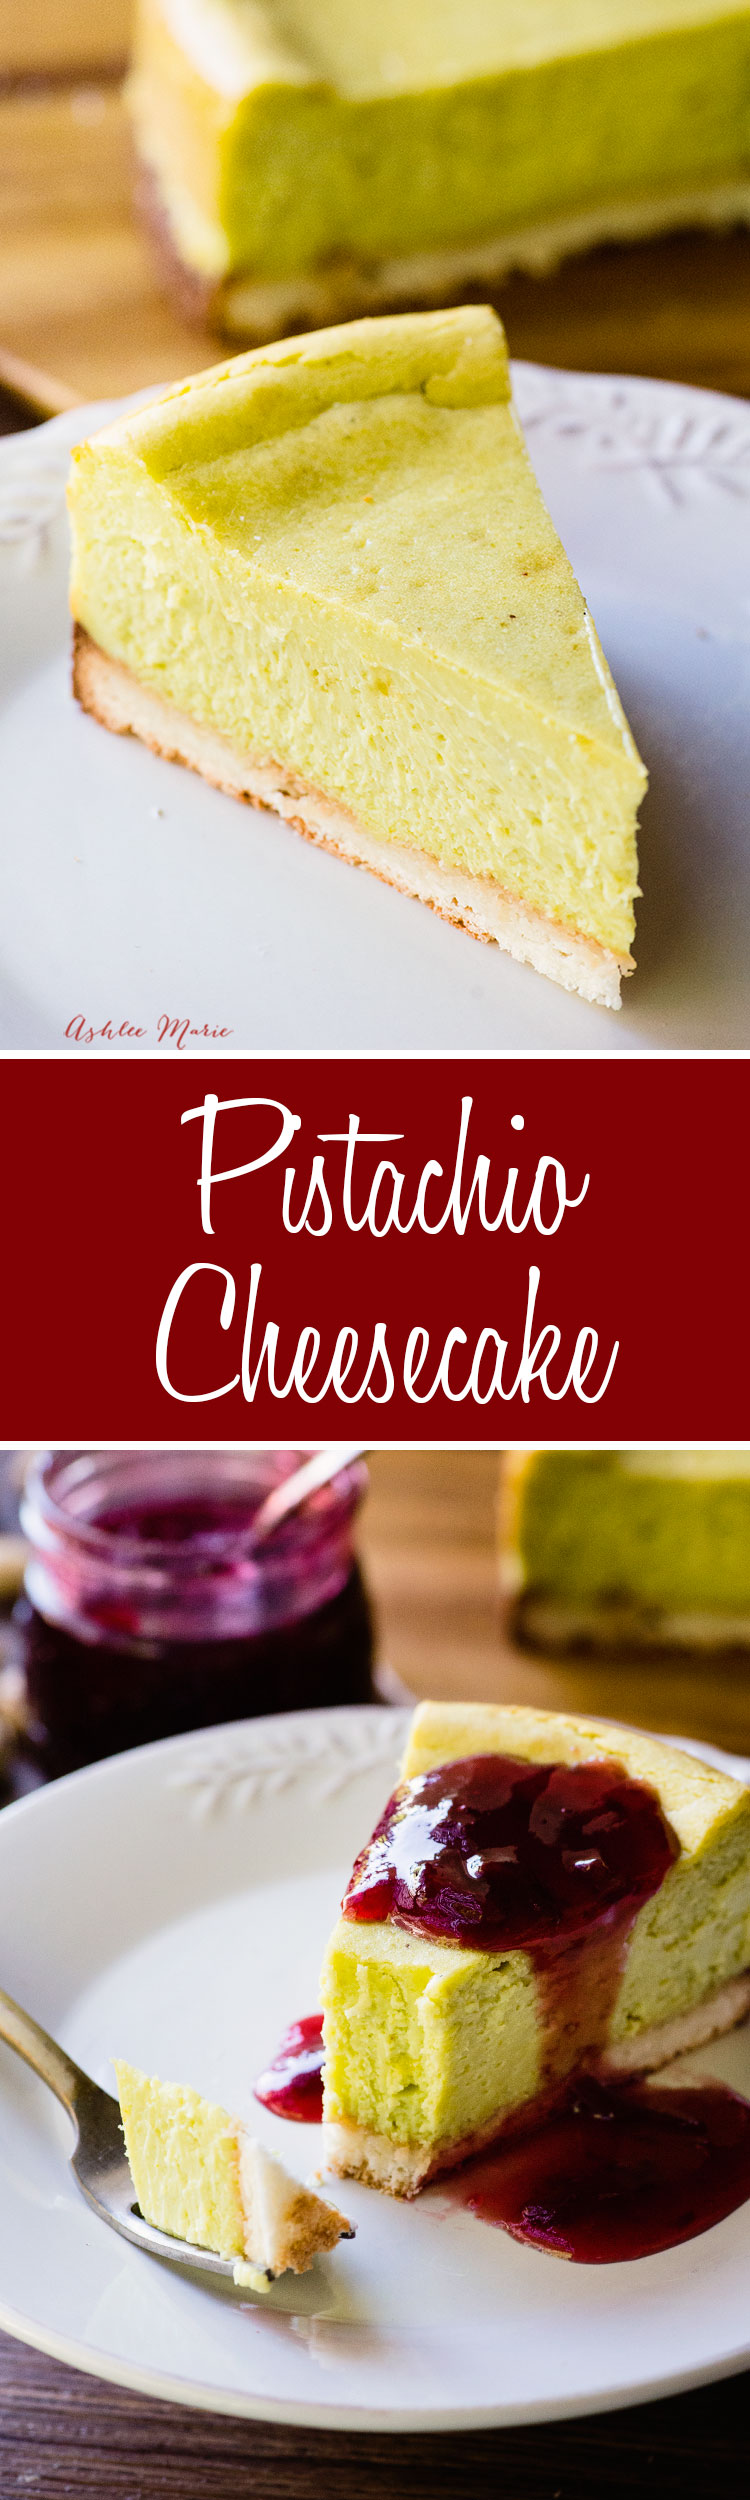 a from scratch pistachio cheesecake made with real pistachios and made with a coconut macaroon crust